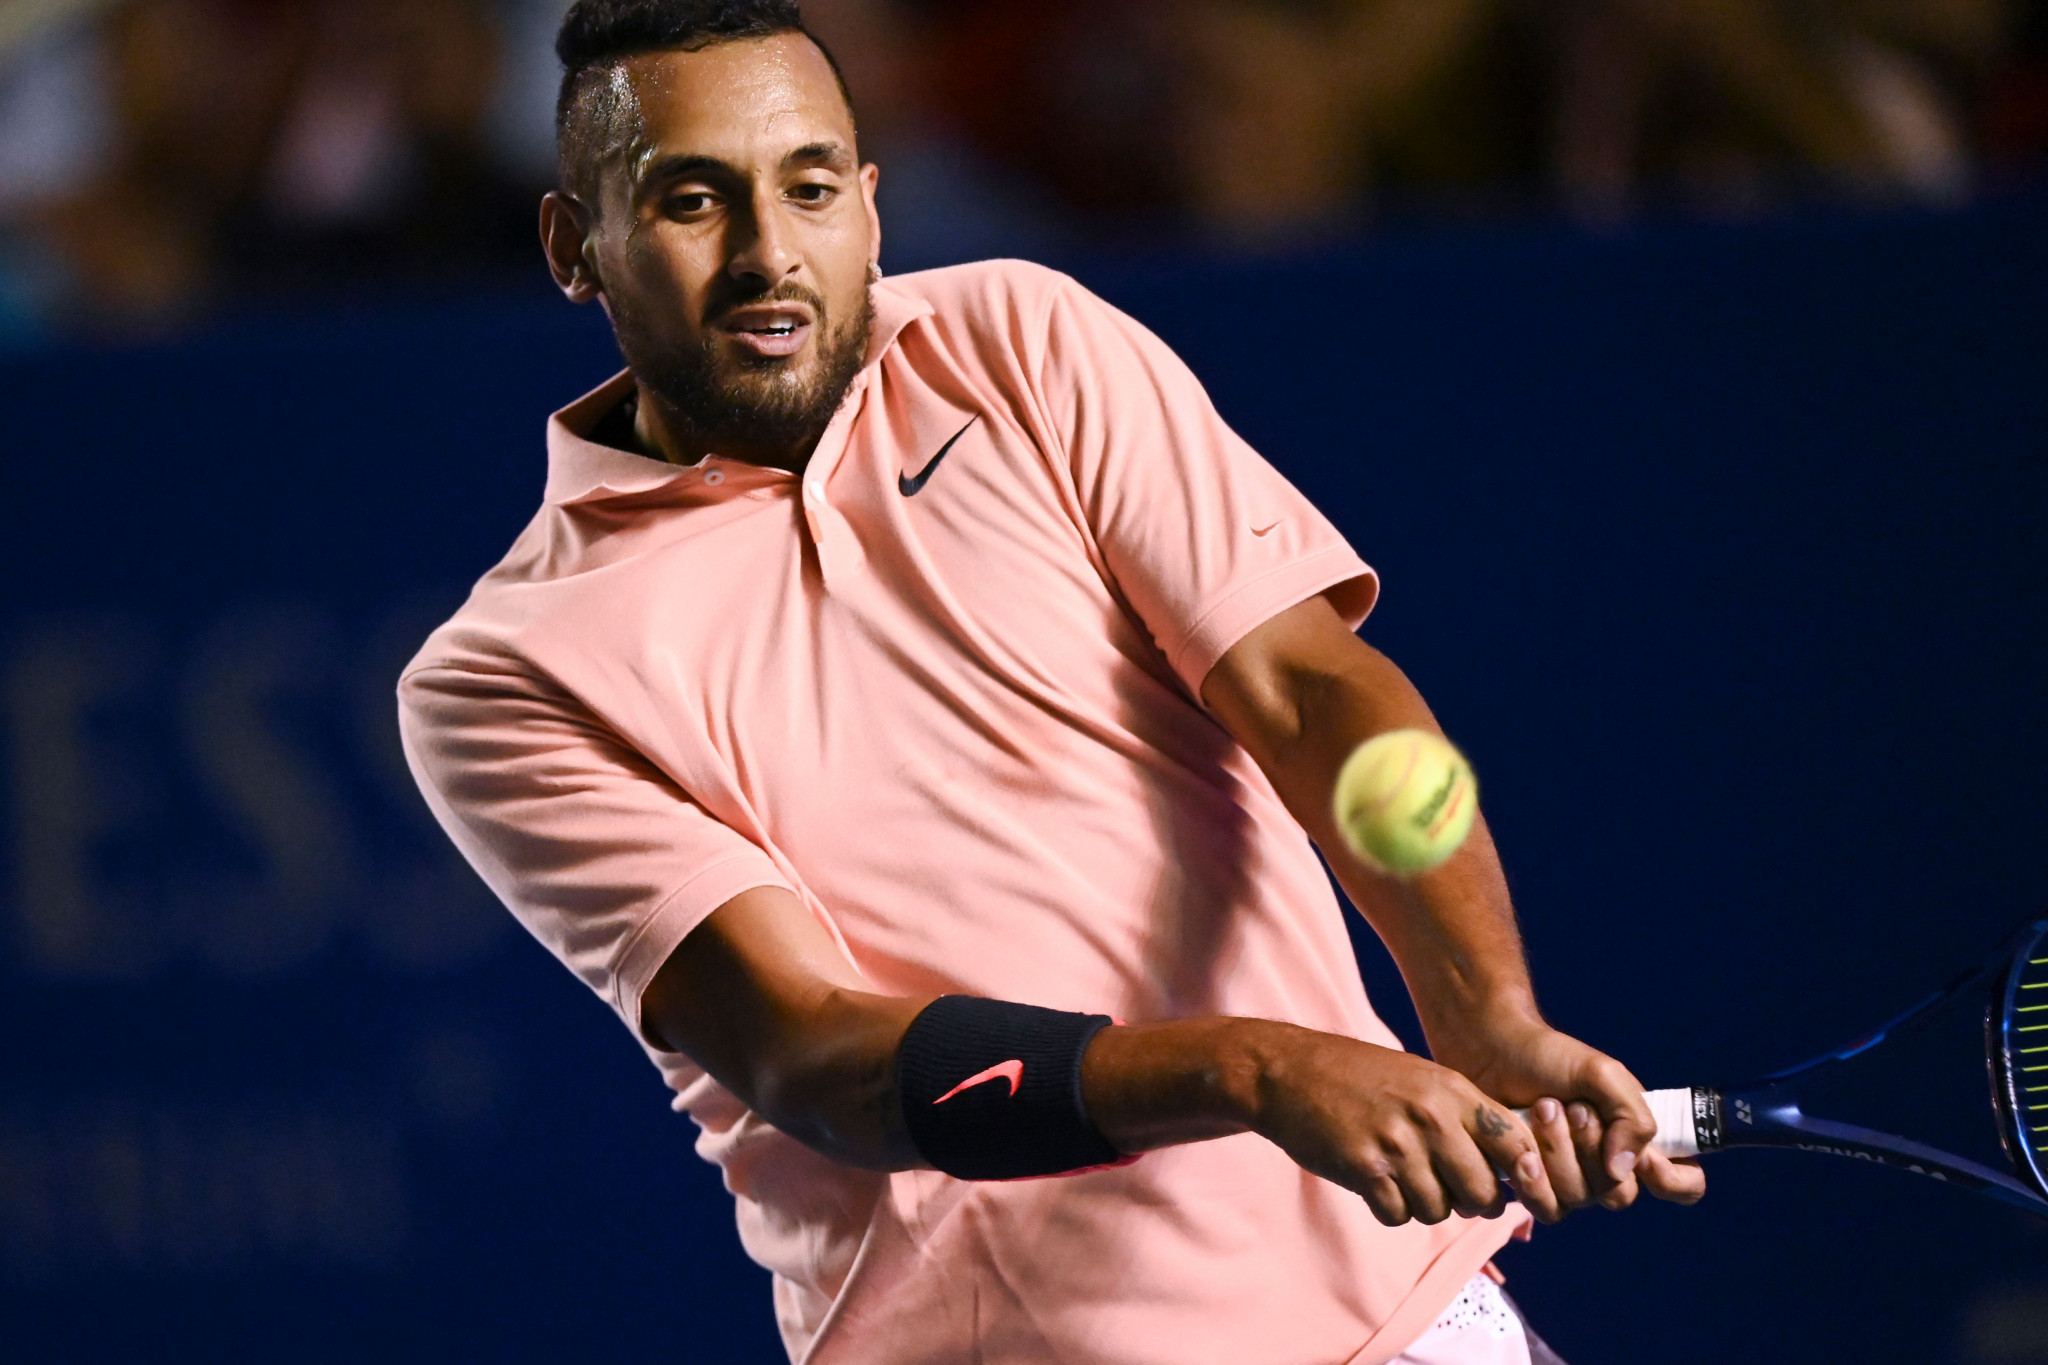 Kyrgios and Khachanov feud following Wilander comments at French Open